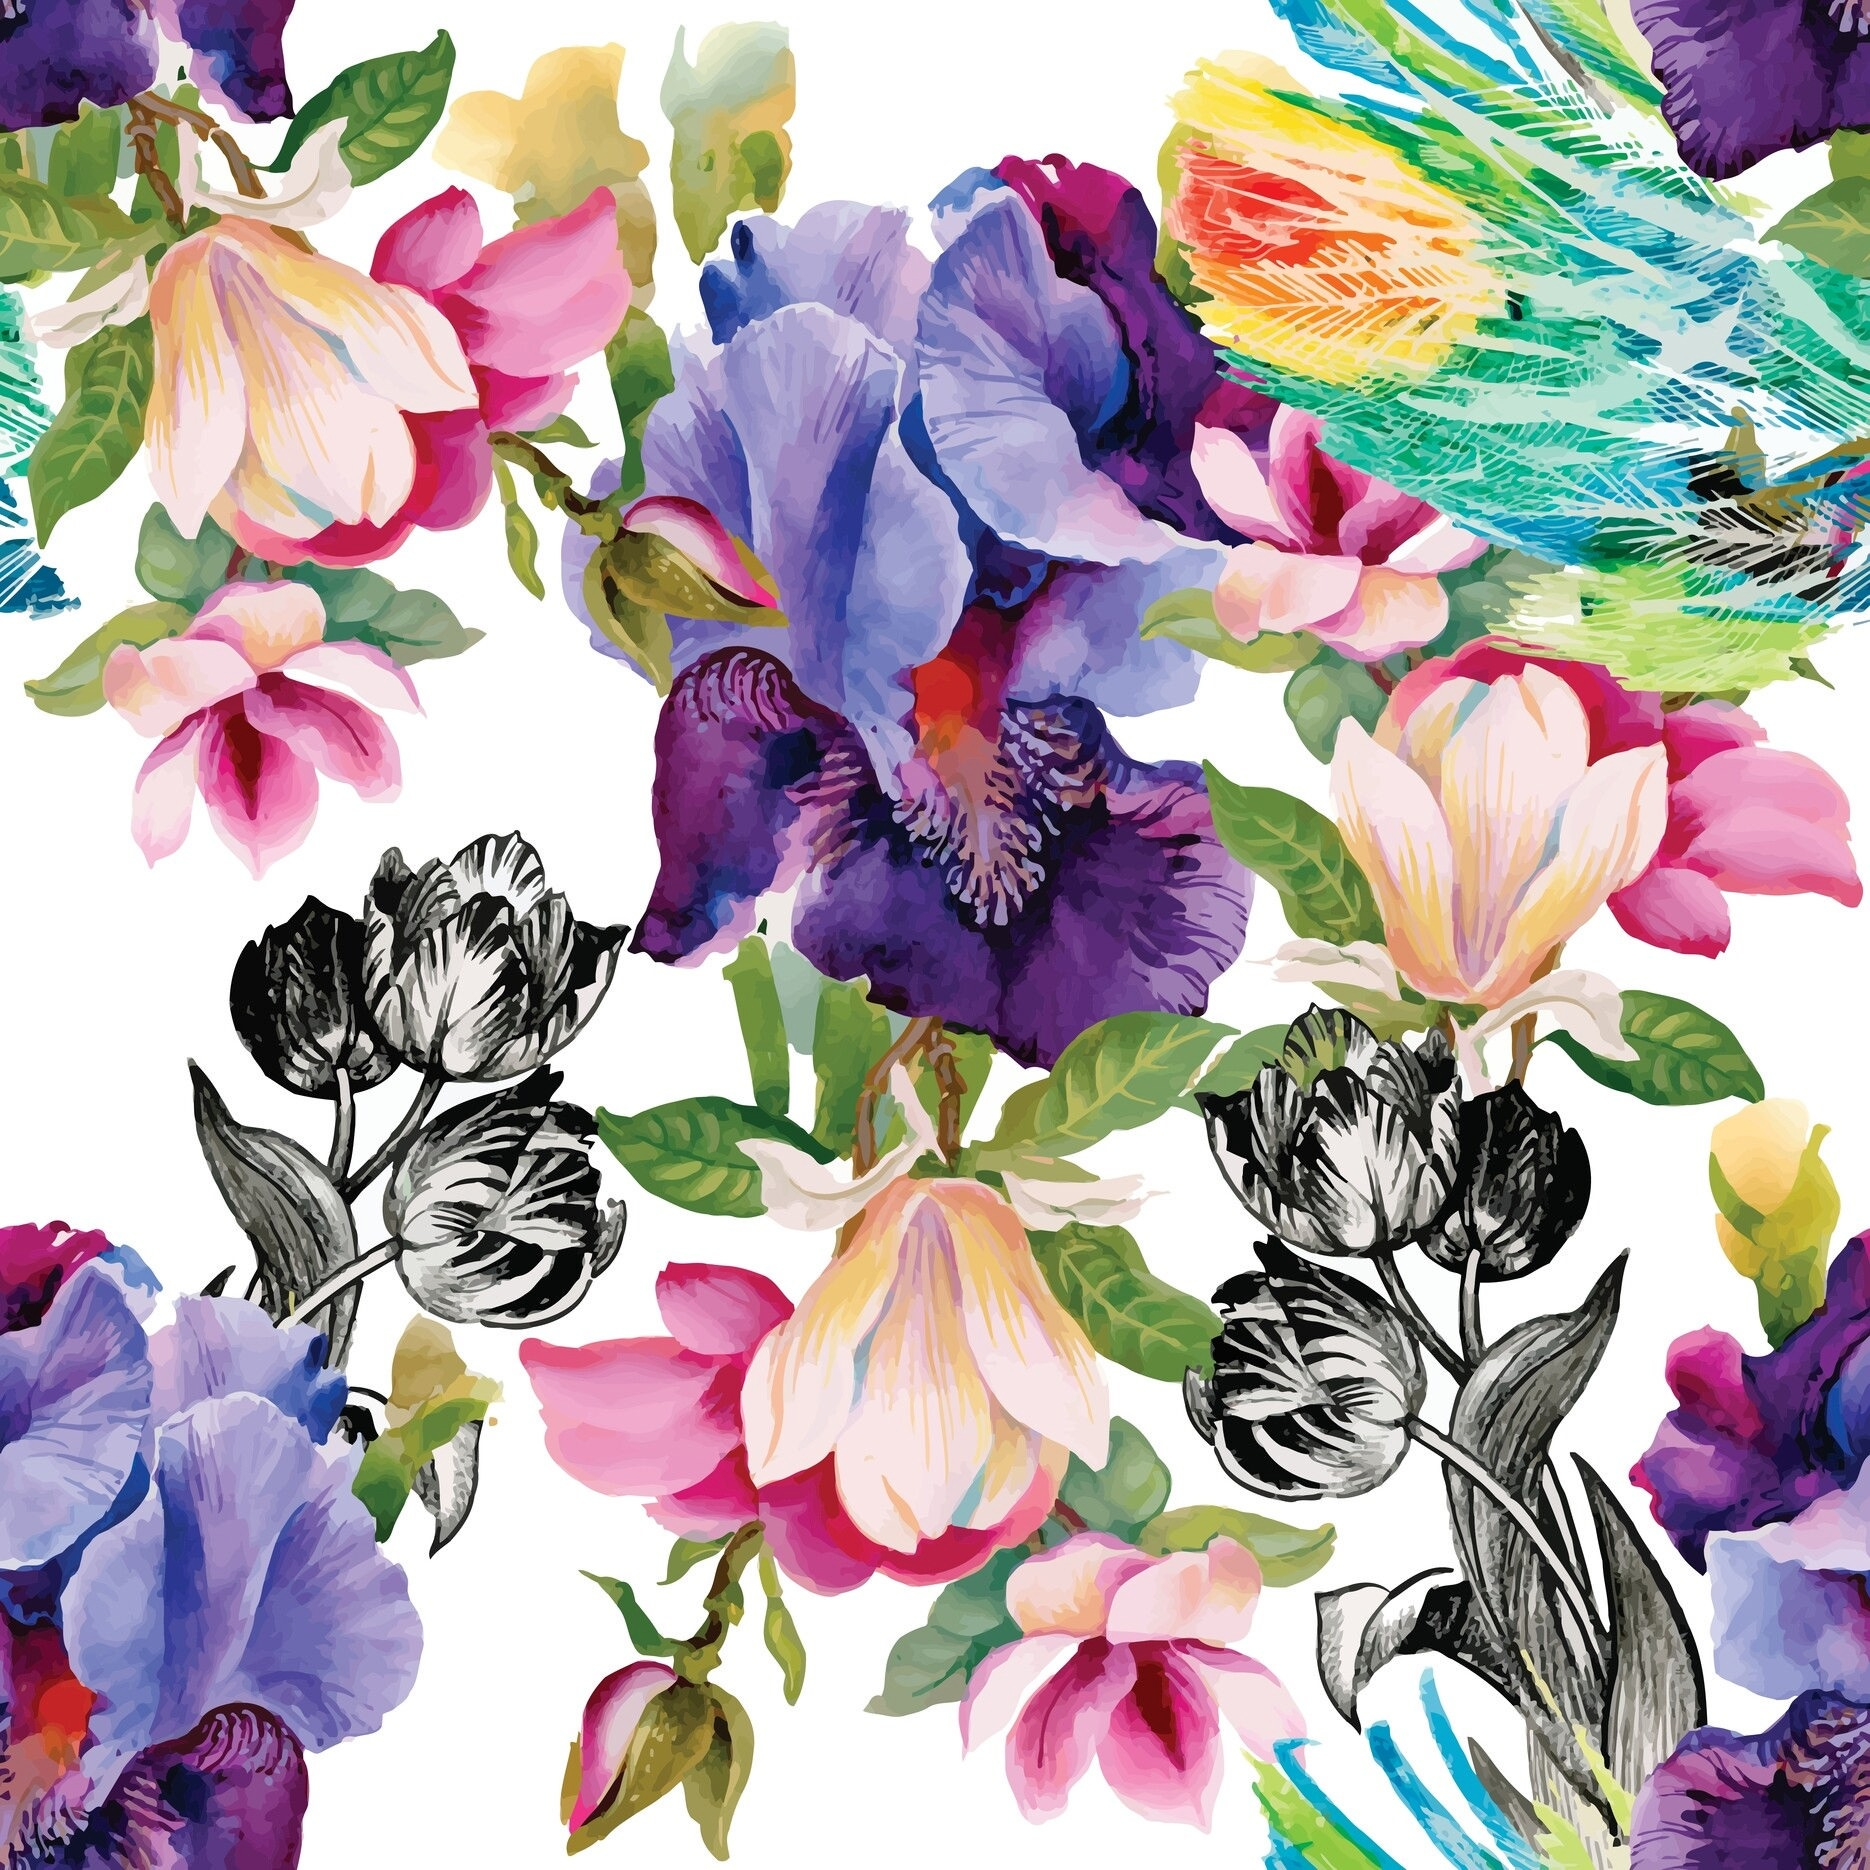 COLORFUL FLORALS Belles & Whistles Rice Papers